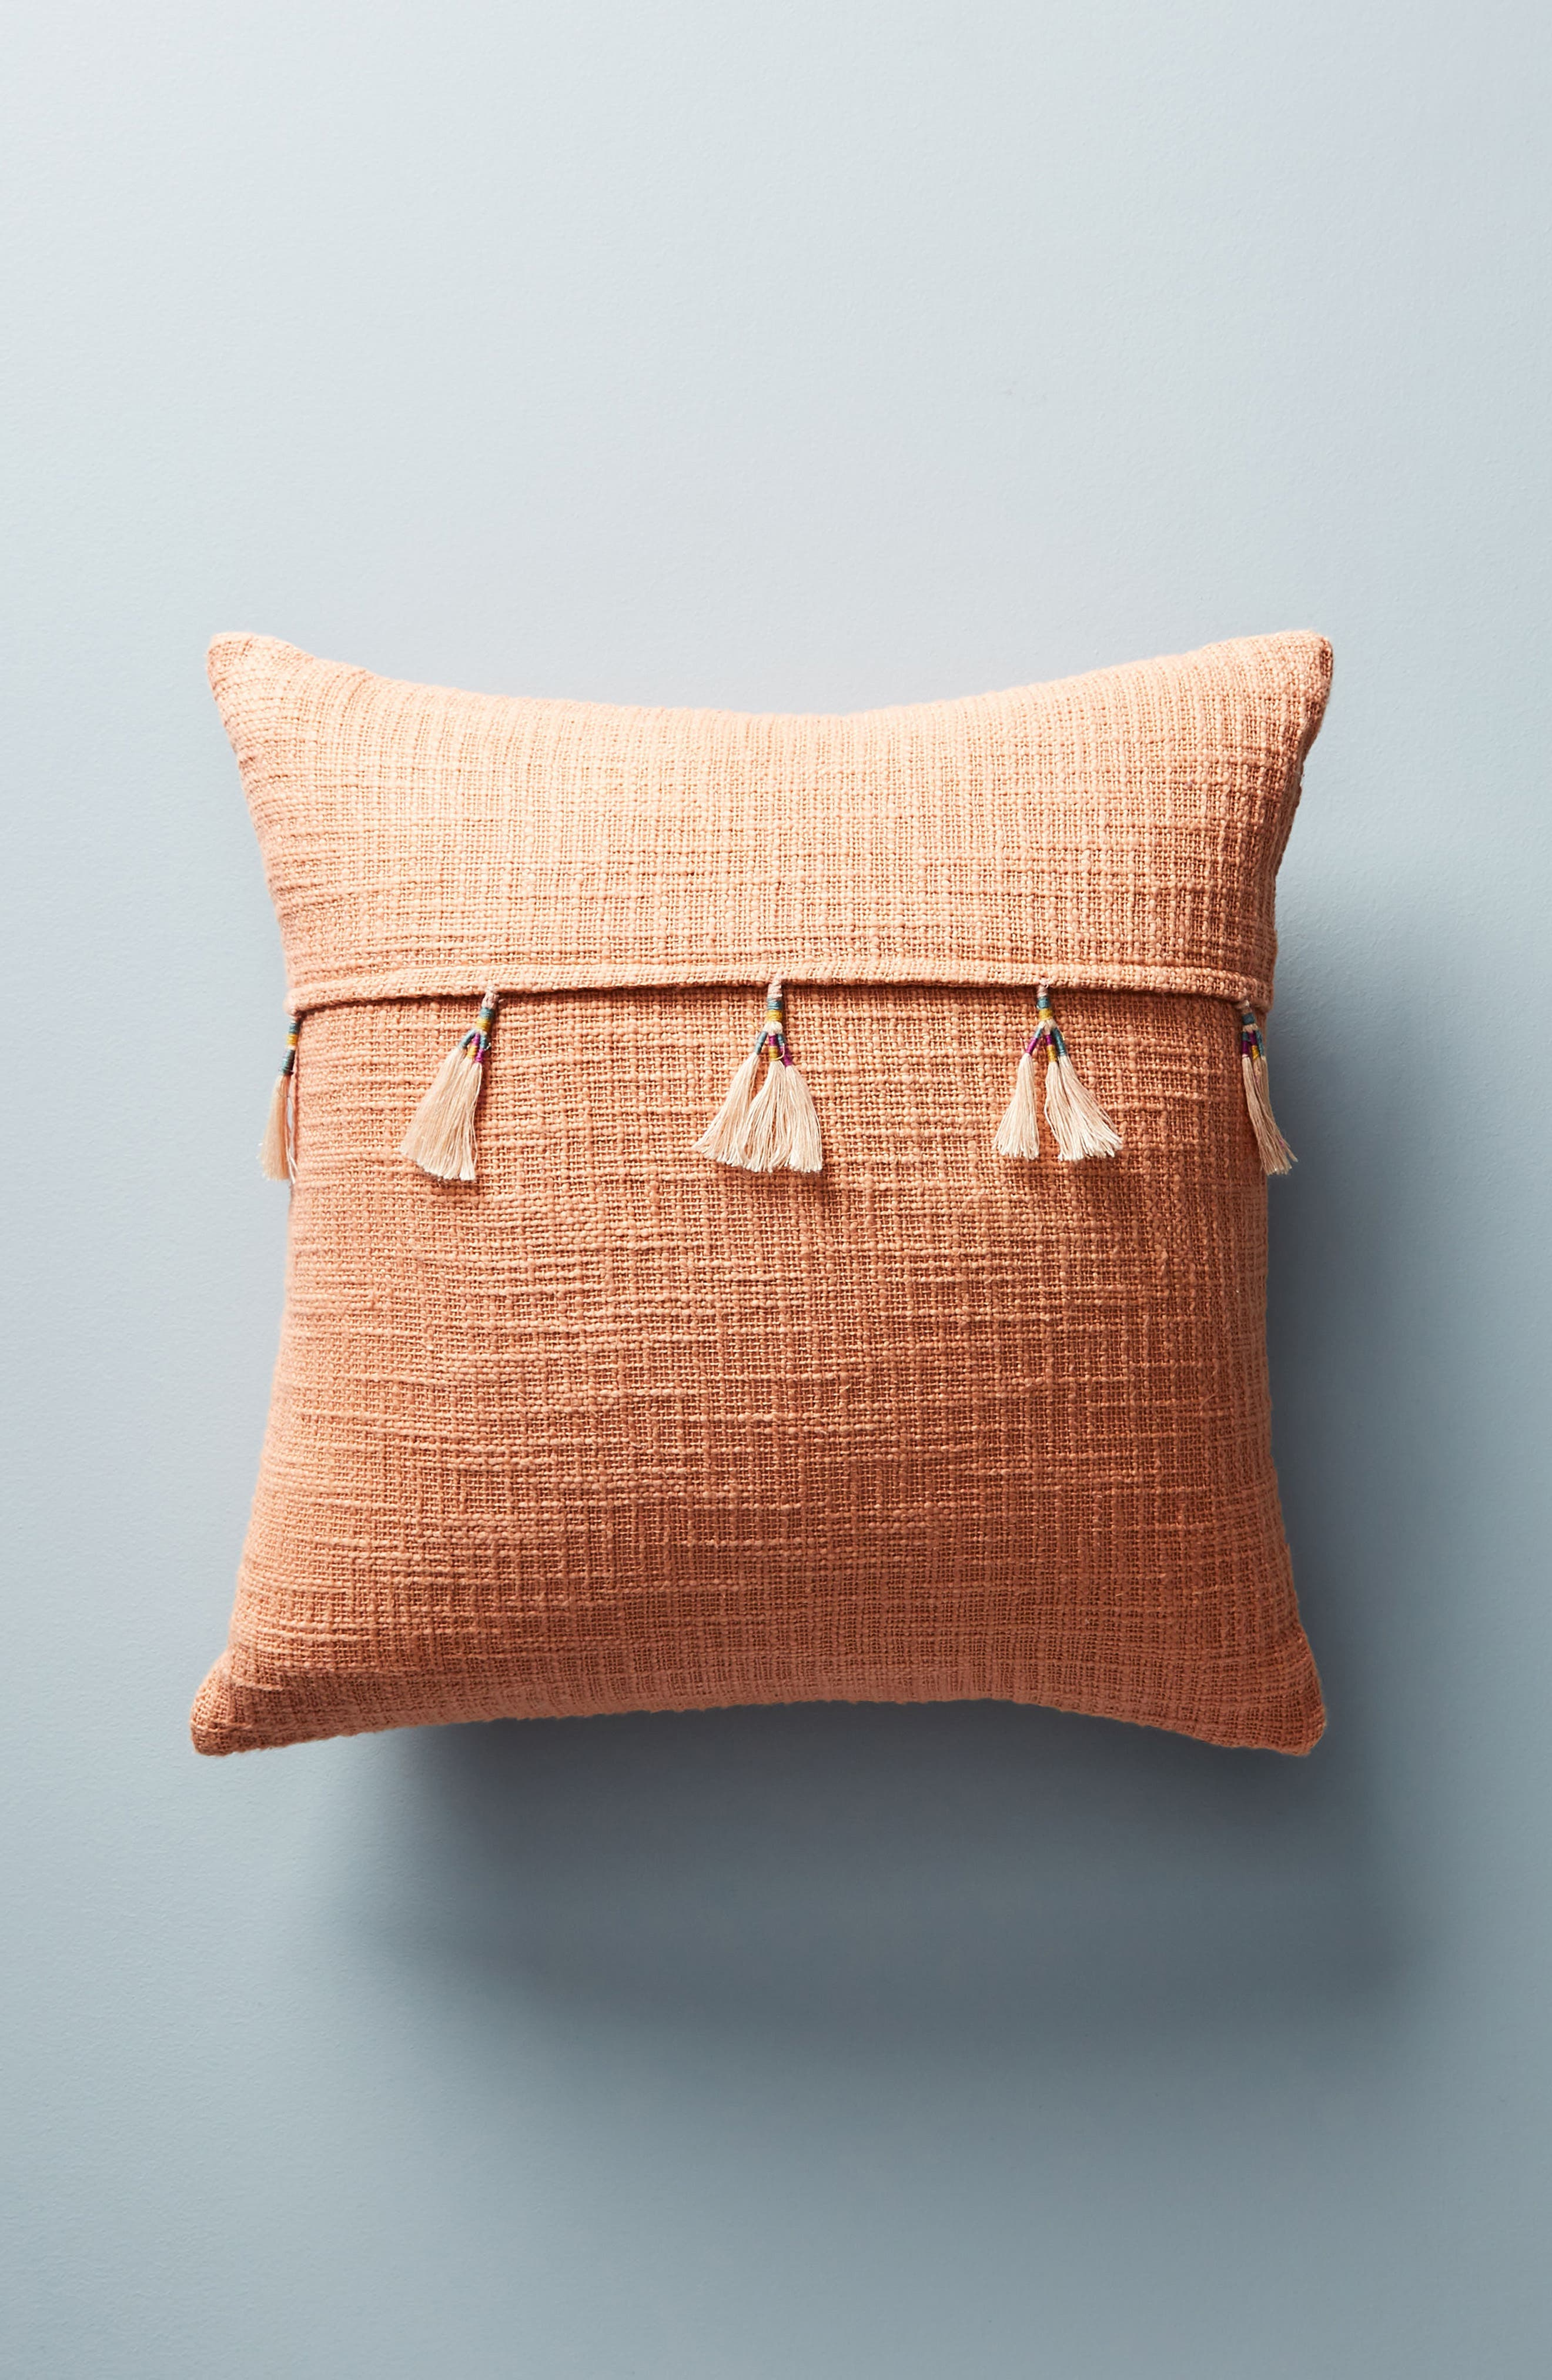 Varied Tassel Accent Pillow,                             Main thumbnail 1, color,                             950